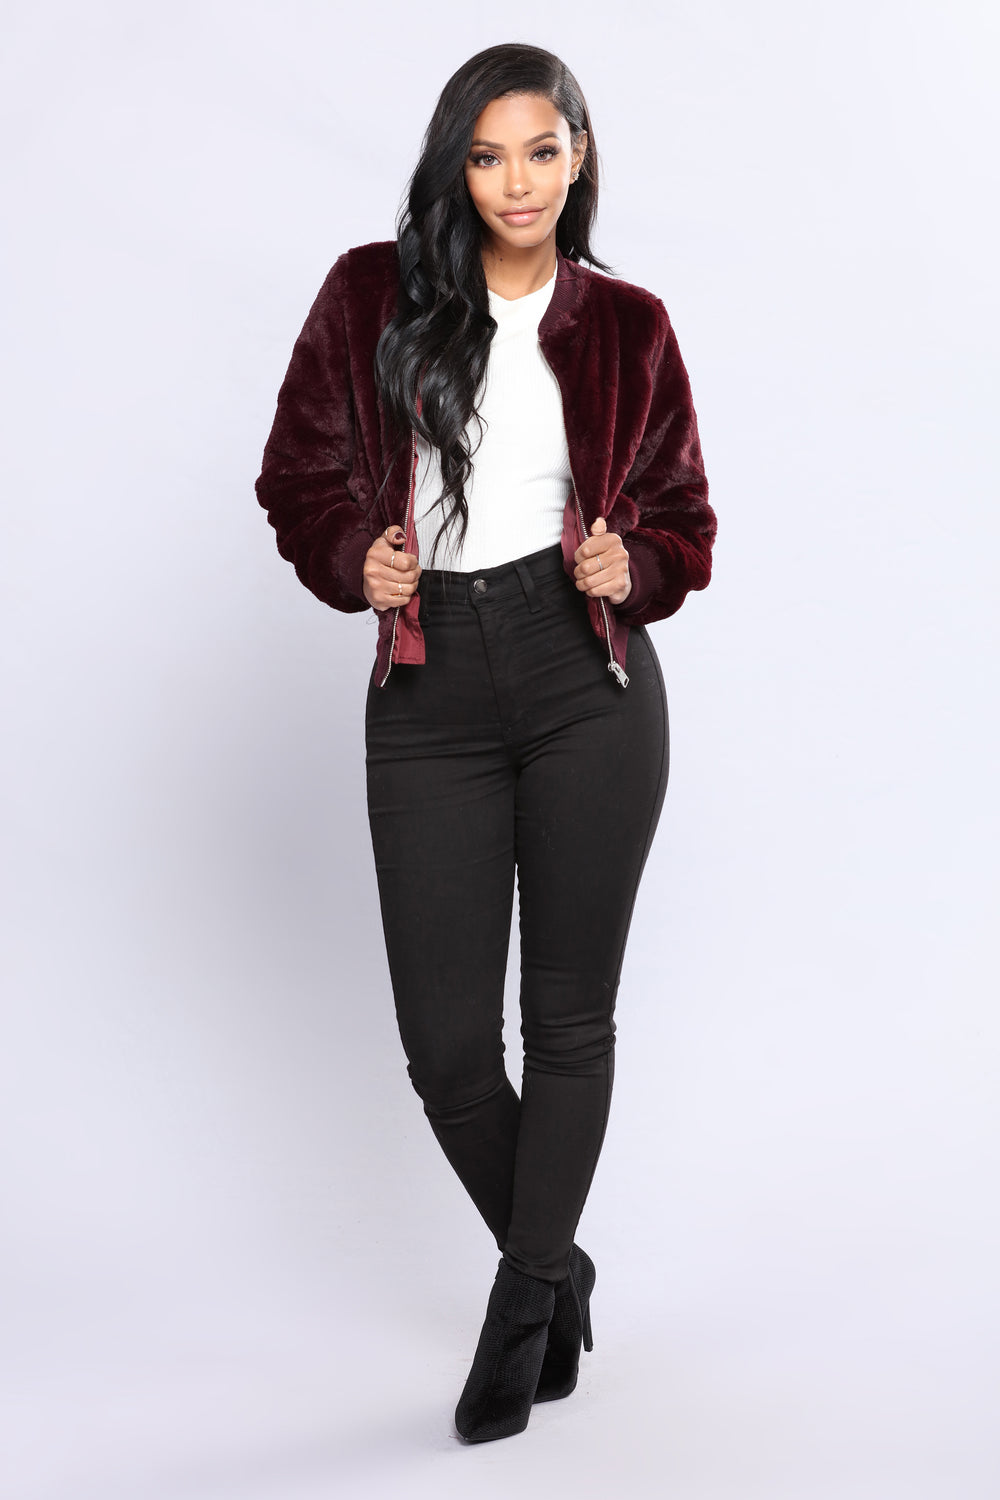 Feel My Love Faux Fur Jacket - Plum